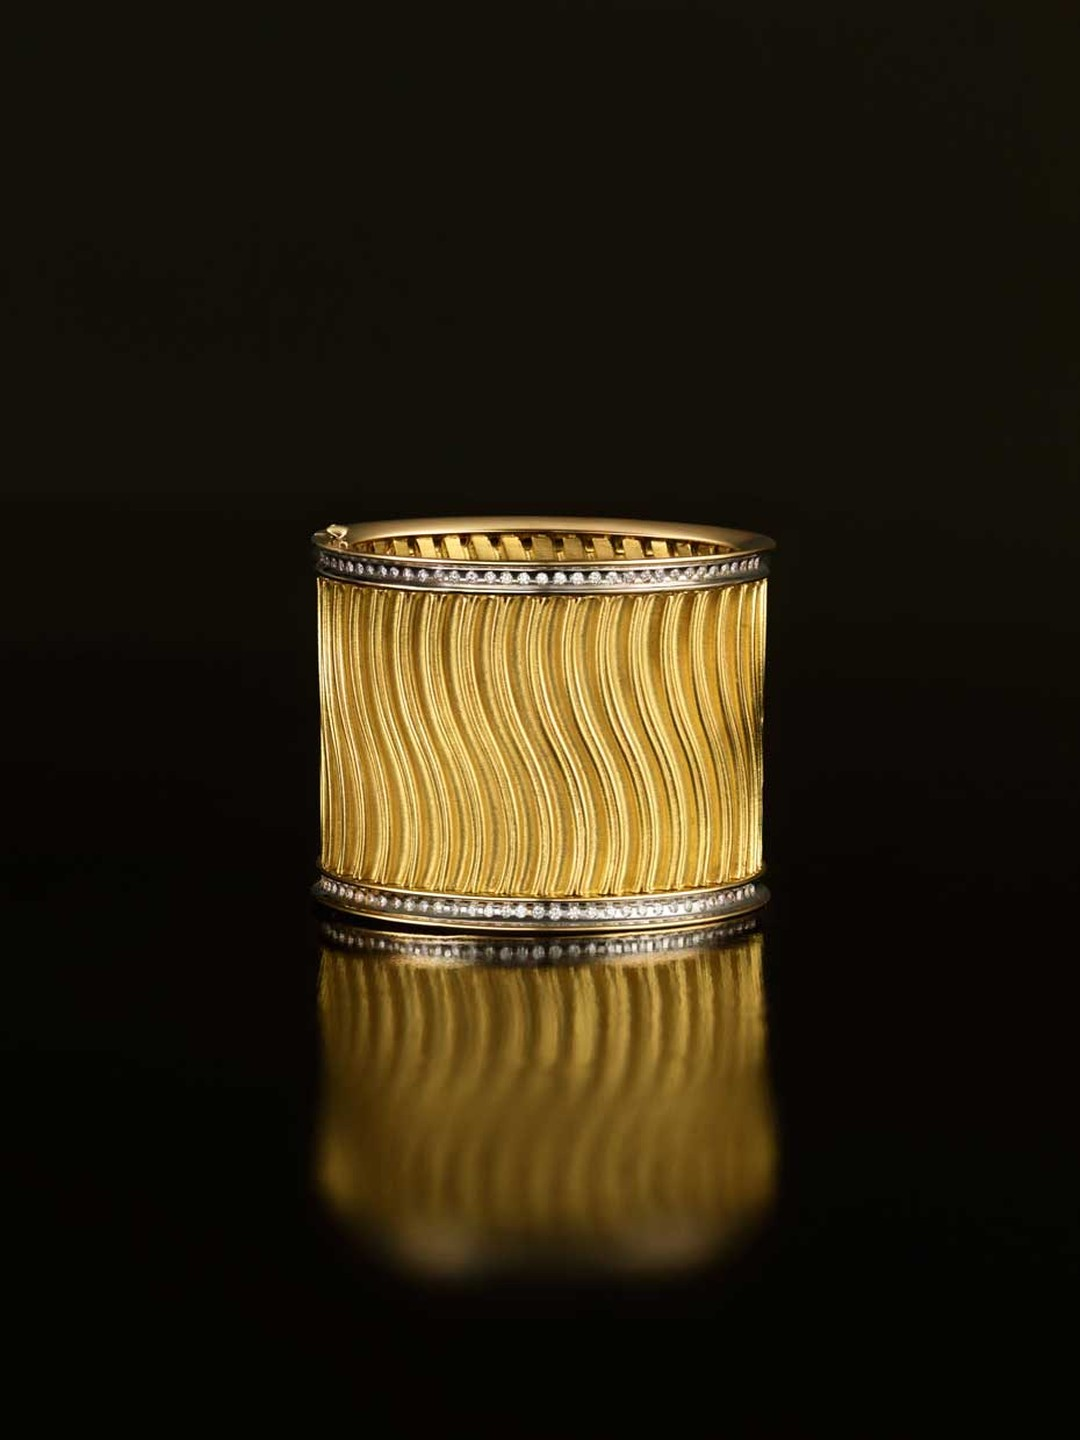 Liv Ballard Collection Cisterna Cuff in pleated yellow gold with pavé diamonds.